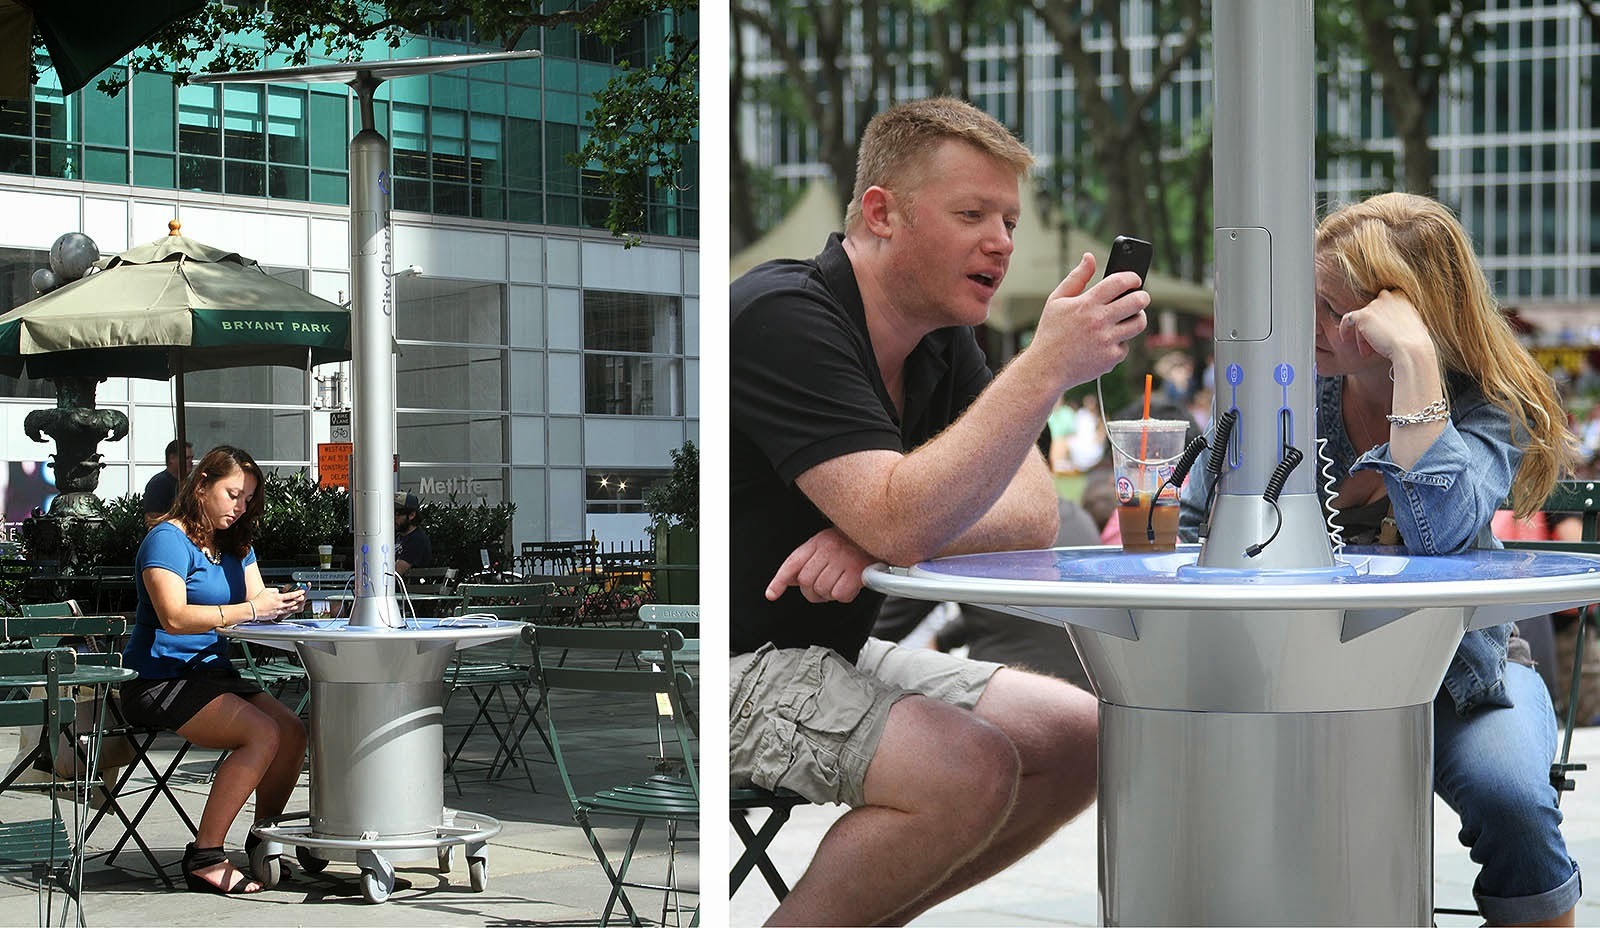 Bryant Park Blog Solar Powered Charging Stations Land In